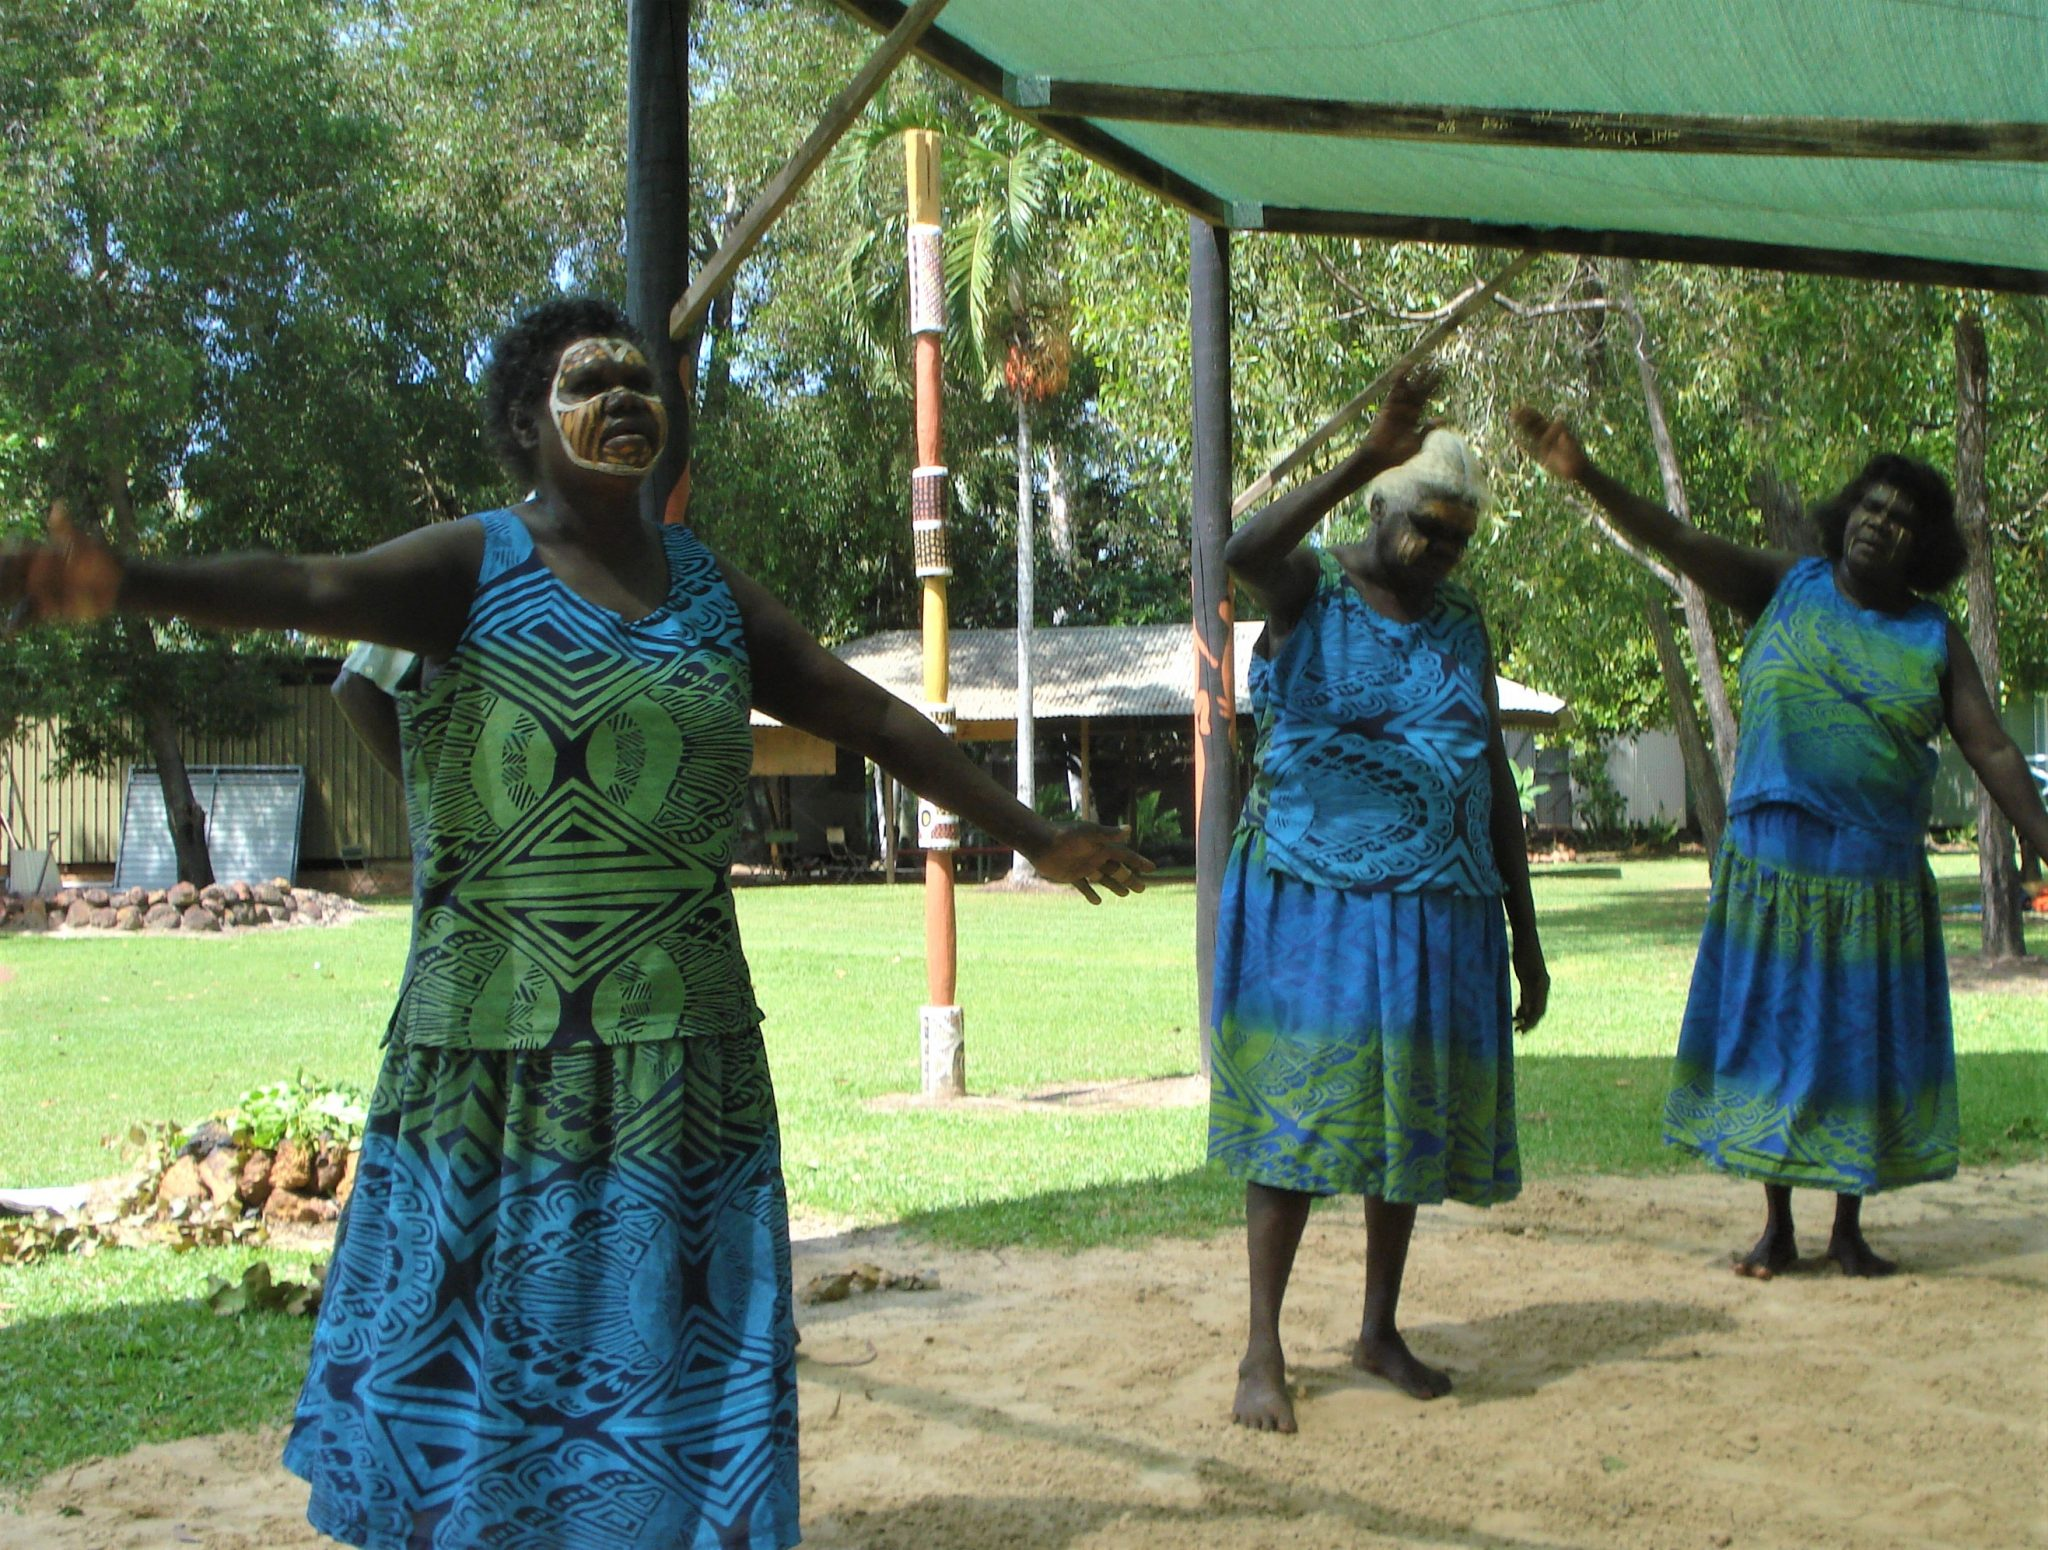 3 Aboriginal women in sleeveless dresses of green, blue and black, dancing under a canopy in a clearing in the jungle of the Tiwi Islands